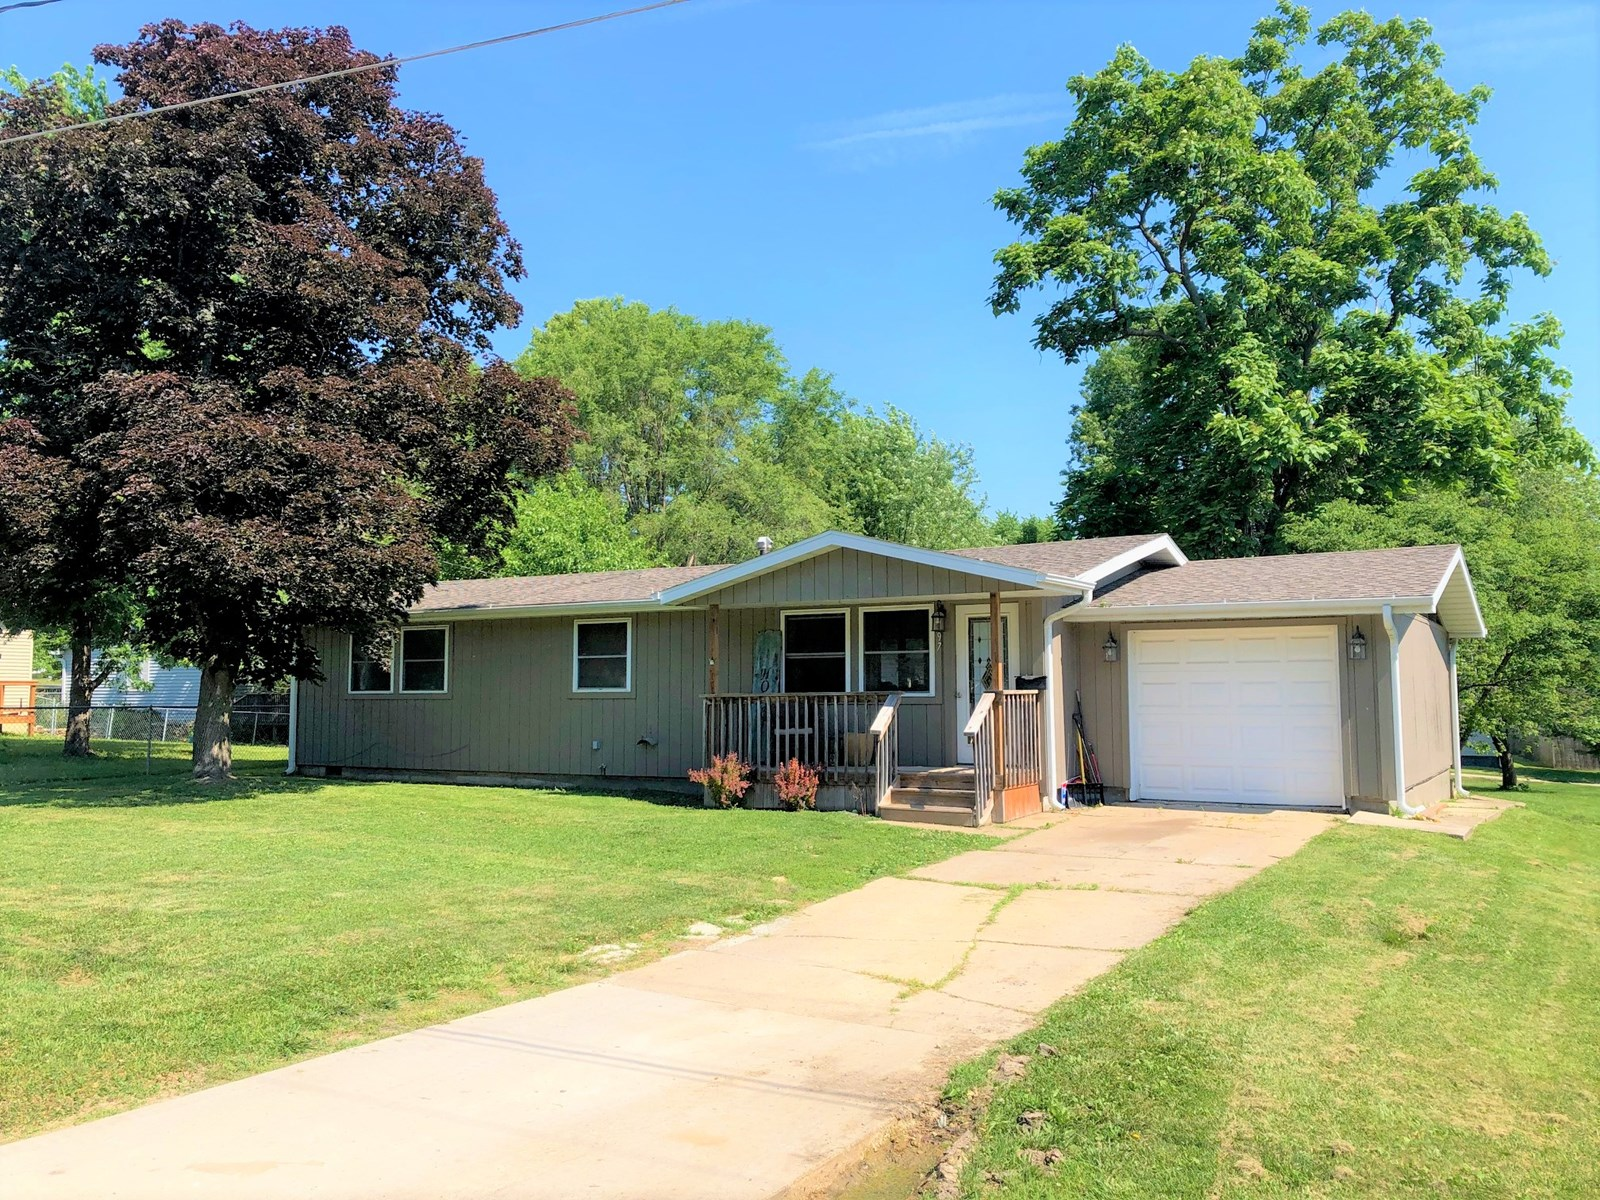 Move-In Ready 3 Bed, 1 Bath Home in Chillicothe, MO